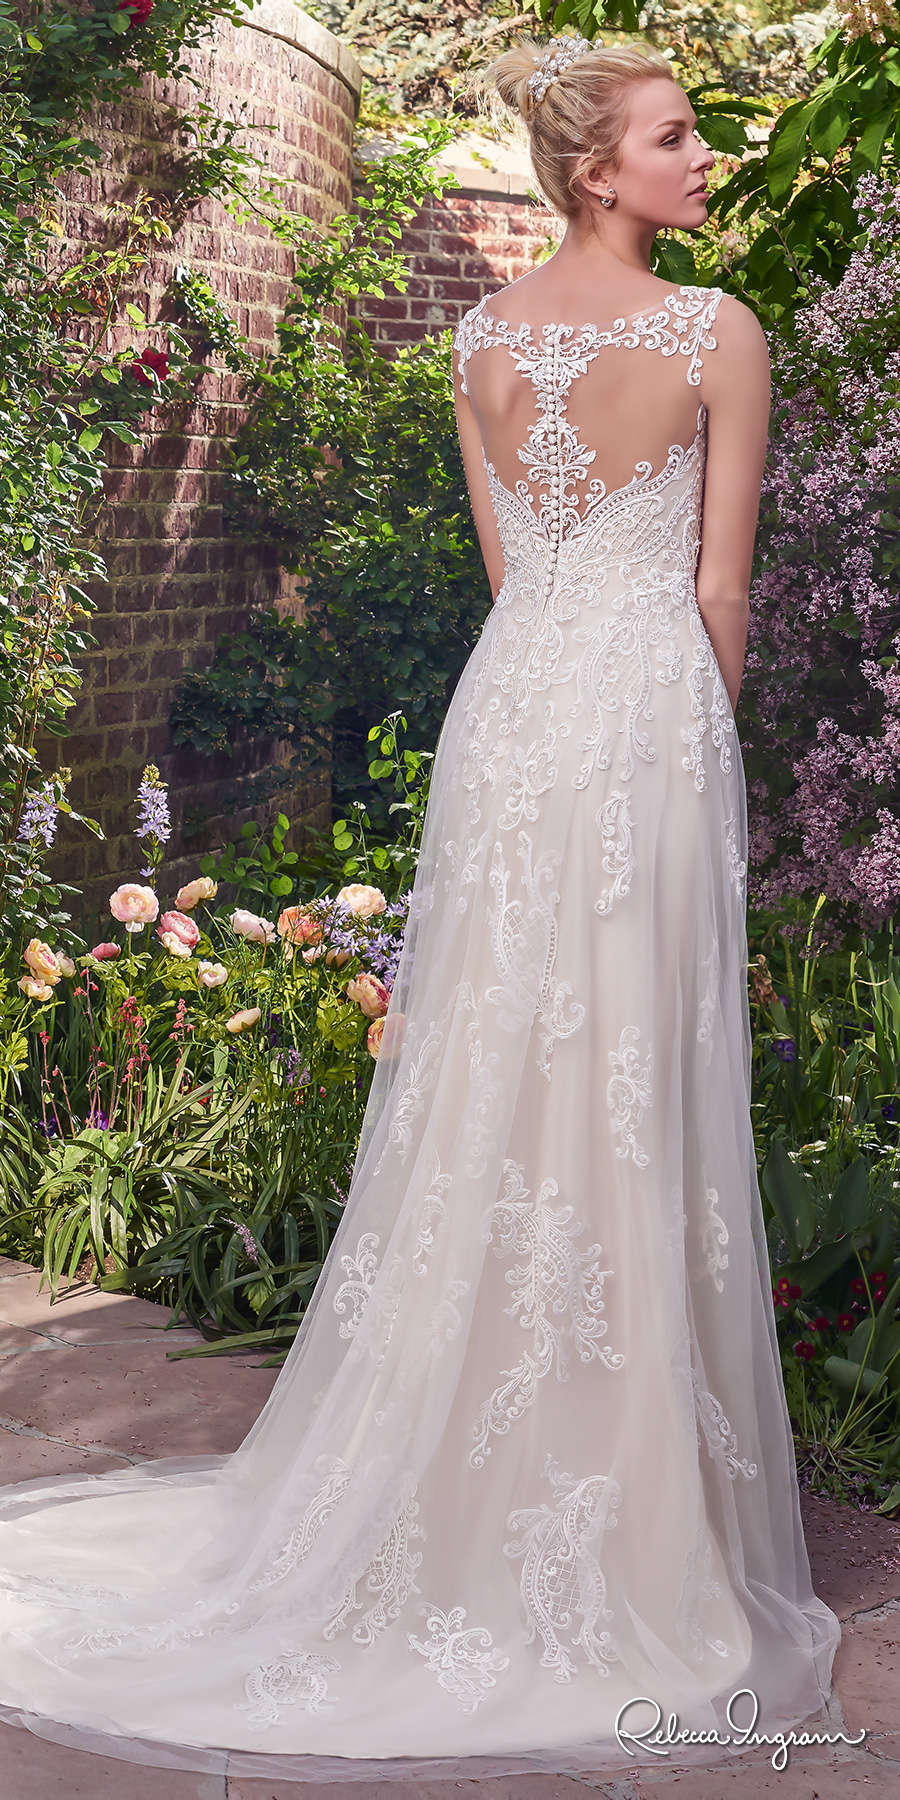 474441a8b9 rebecca ingram 2017 bridal sleeveless lace strap illusion scoop sweetheart  neckline heavily embellished bodice romantic modified